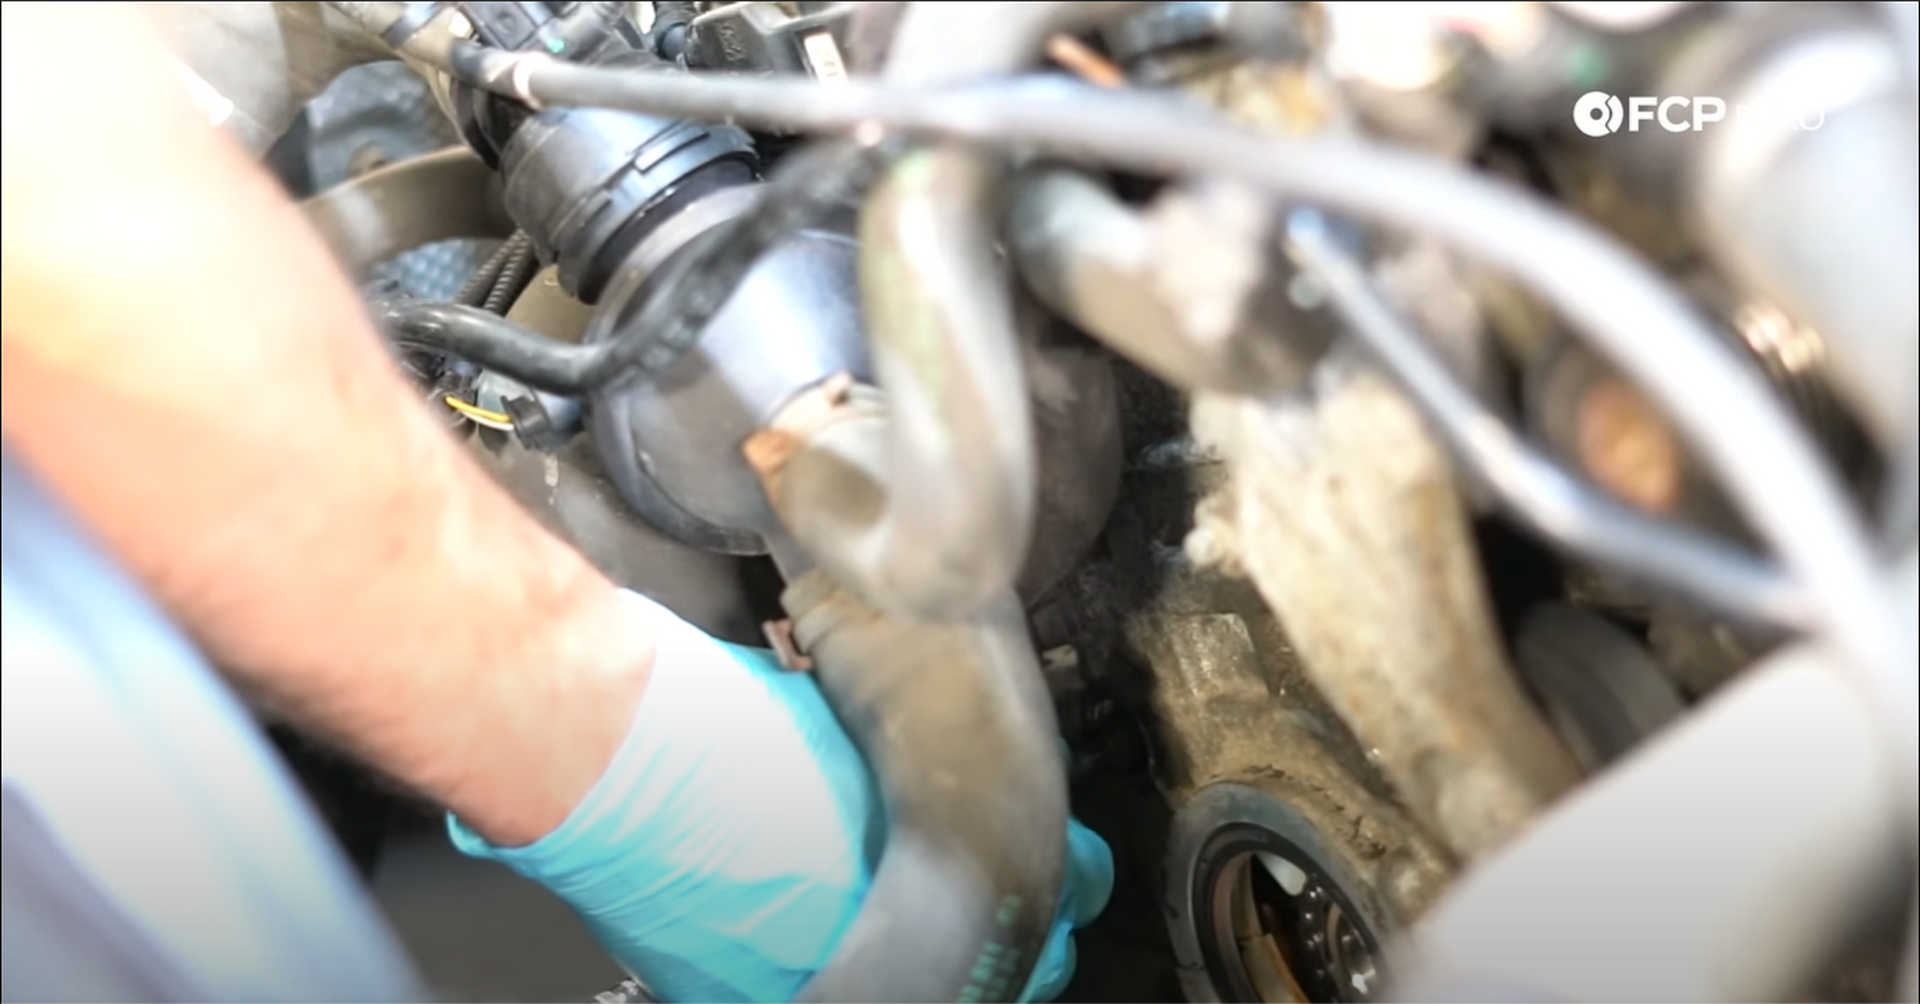 DIY BMW N20 Timing Chain installing the timing chain assembly guide pins